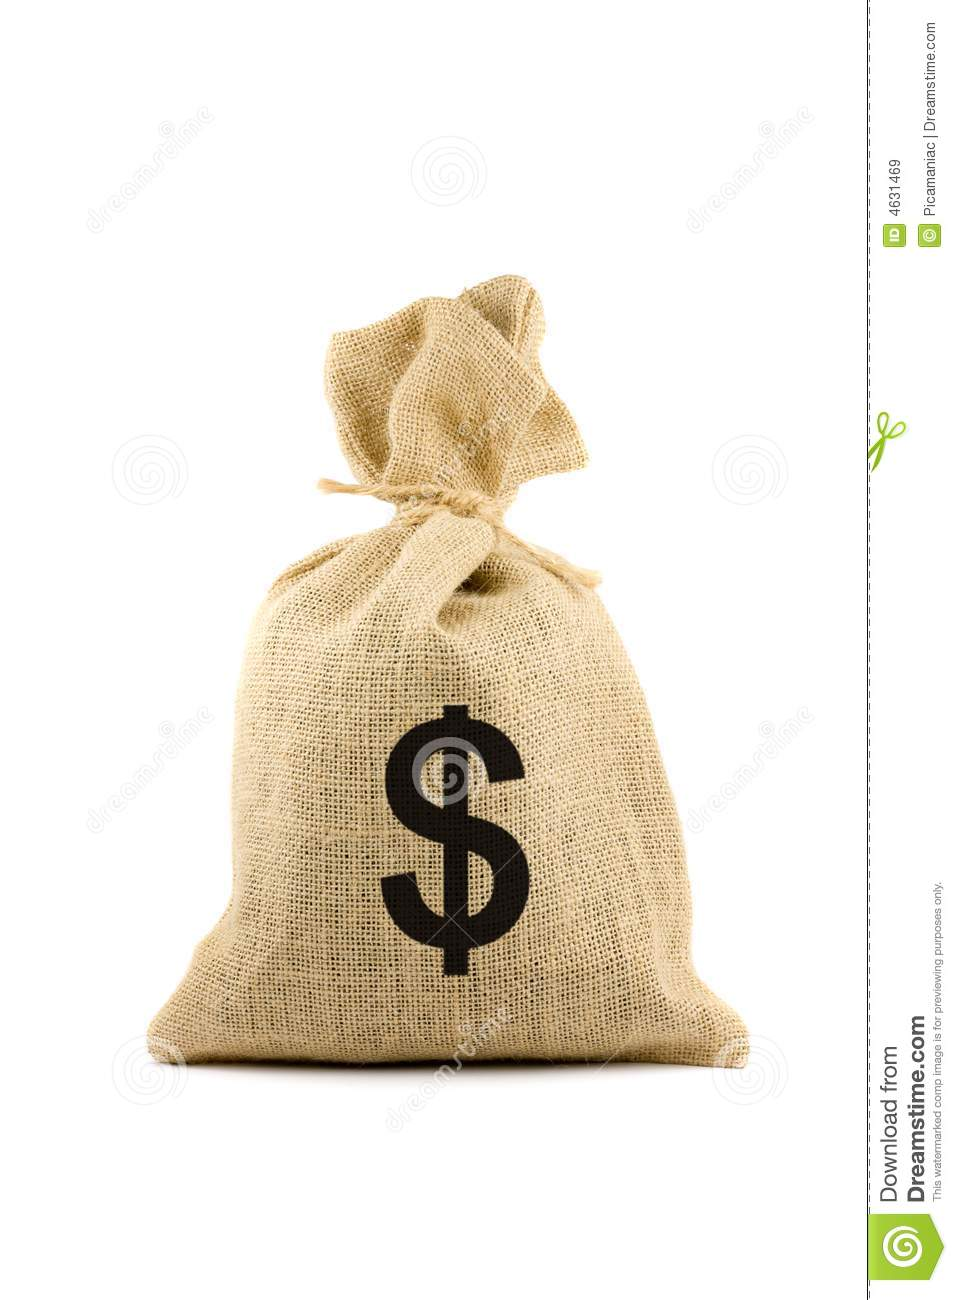 Bag With Dollar Sign Stock Image Image Of Object